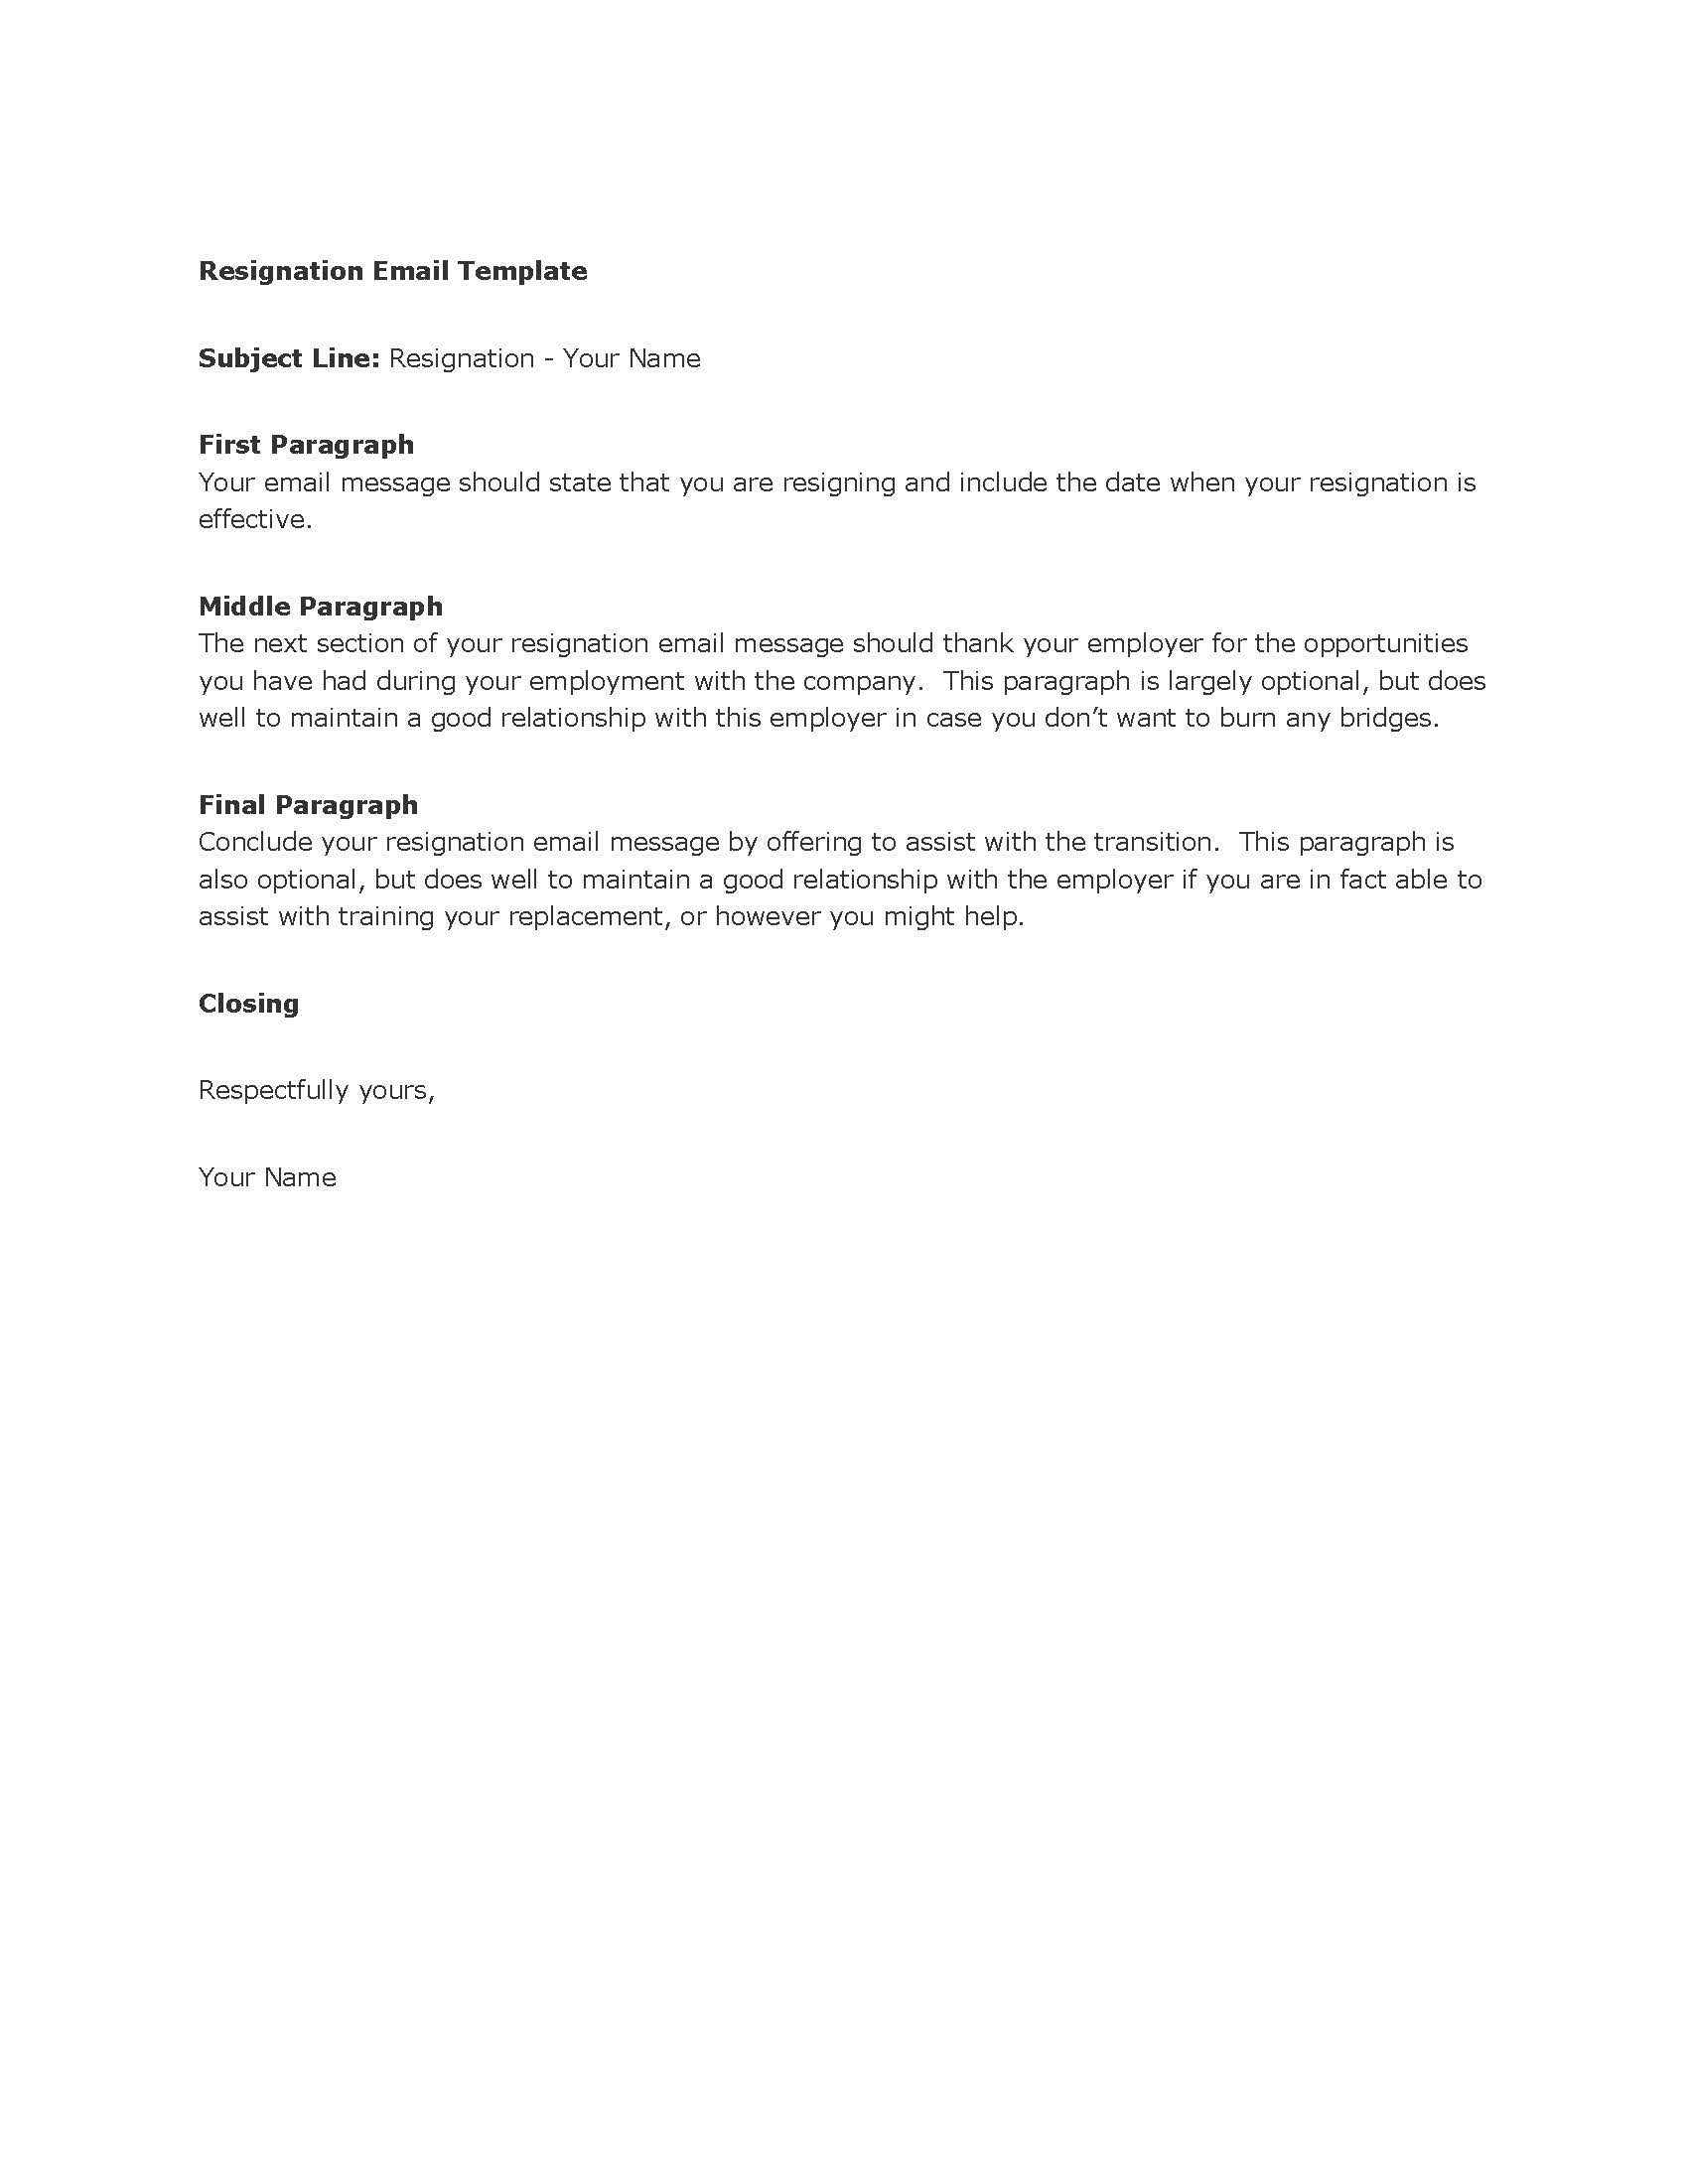 Template Resignation Email Business Email Template 2200